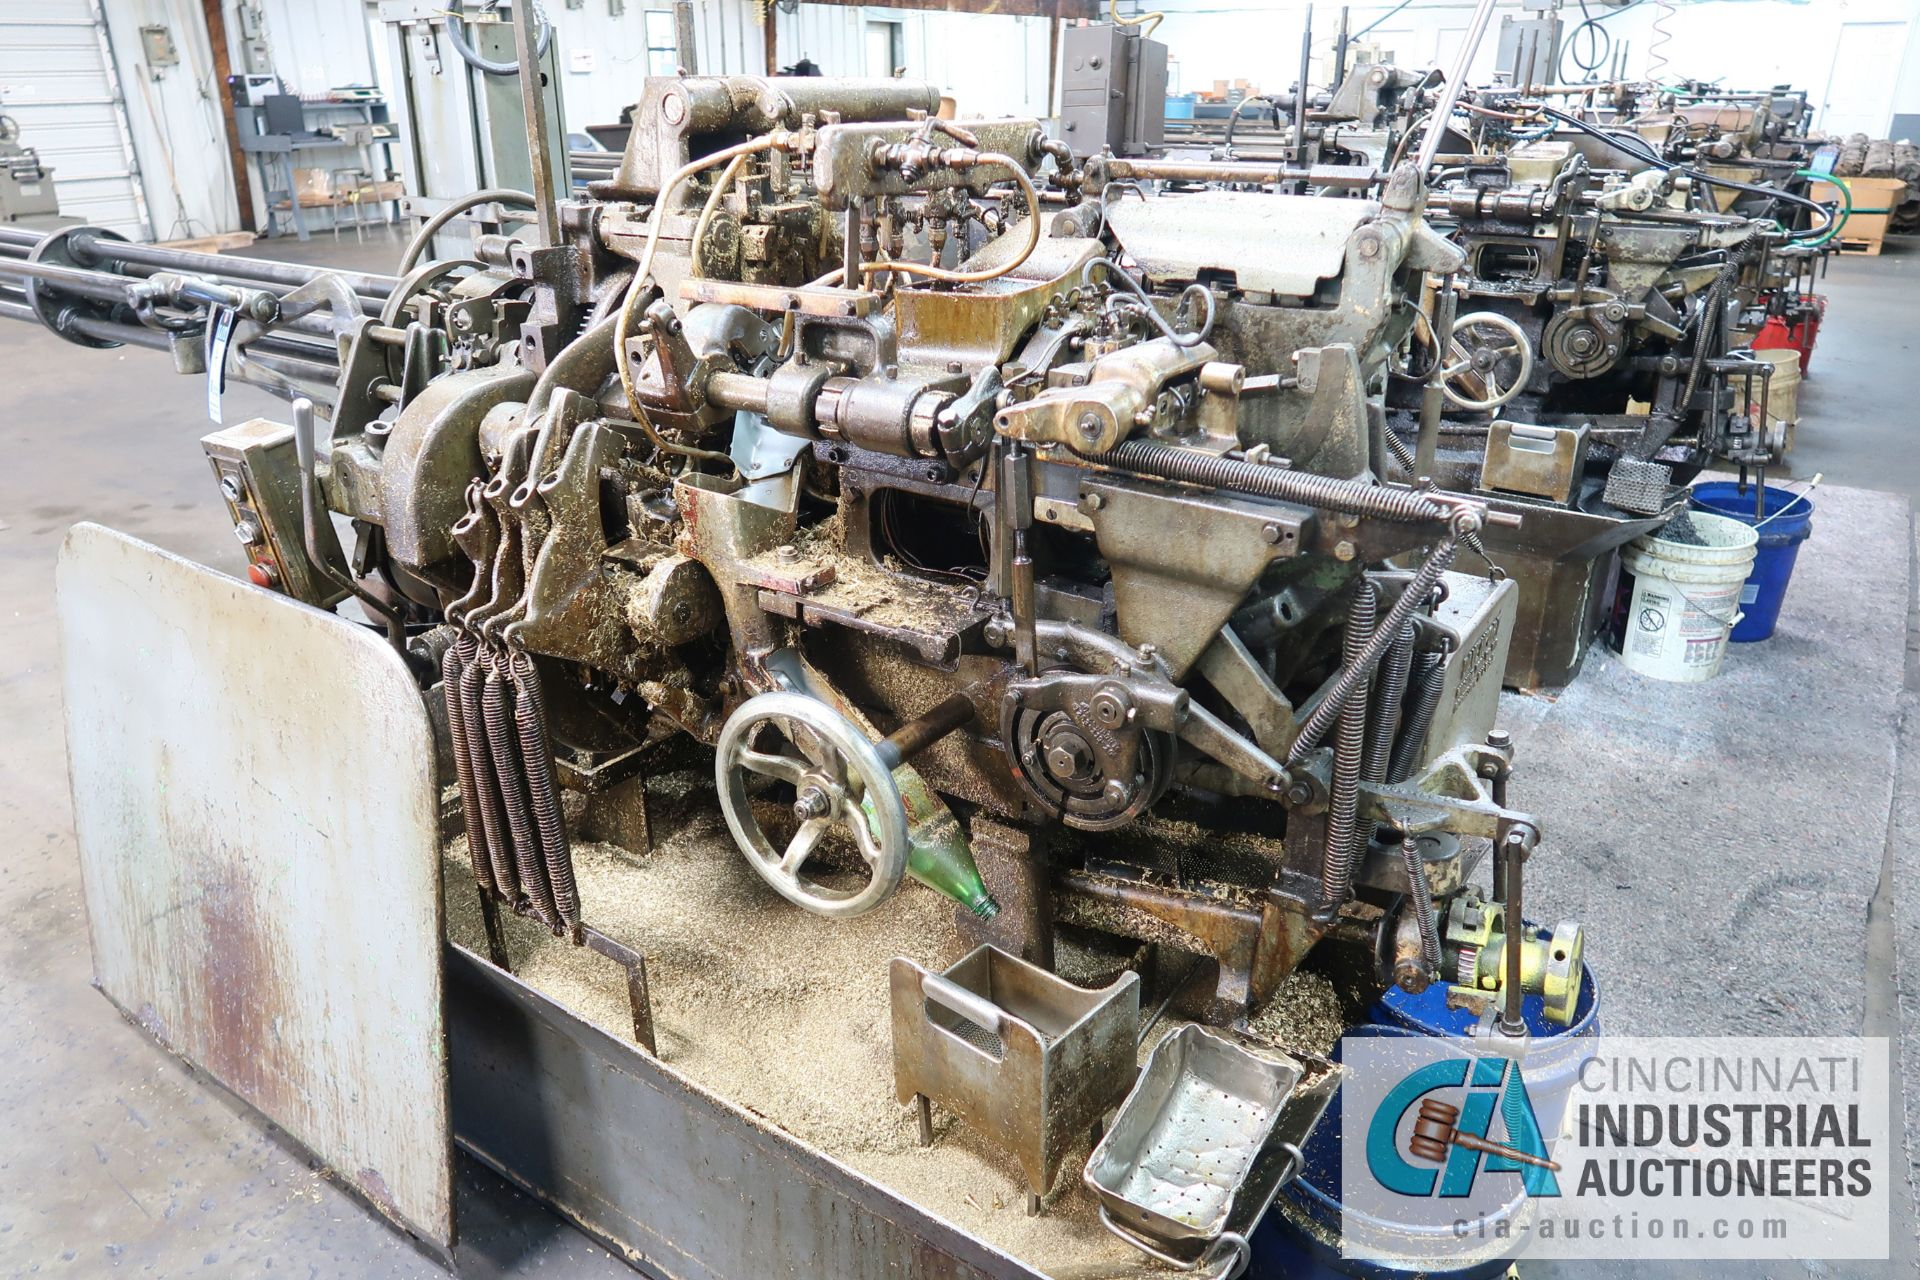 """Lot 4 - 3/4"""" DAVENPORT 5-SPINDLE SCREW MACHINE; S/N 95442 (NEW 3-1978), LONG BED, PICK OFF, DEBURR,"""